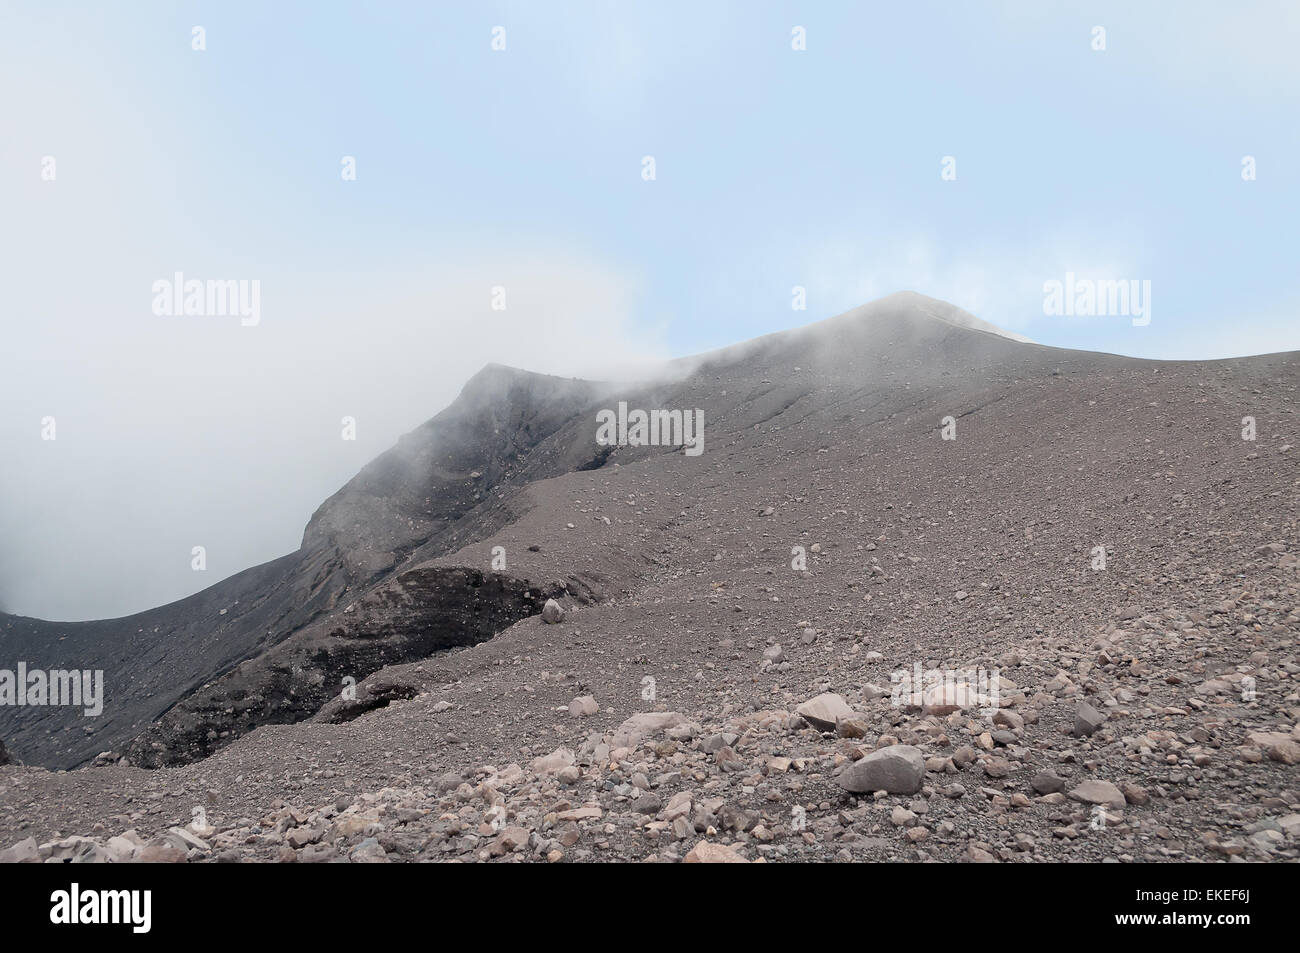 Volcano Merapi in the cloudsi. It is the most active volcano in Sumatra. Indonesia - Stock Image